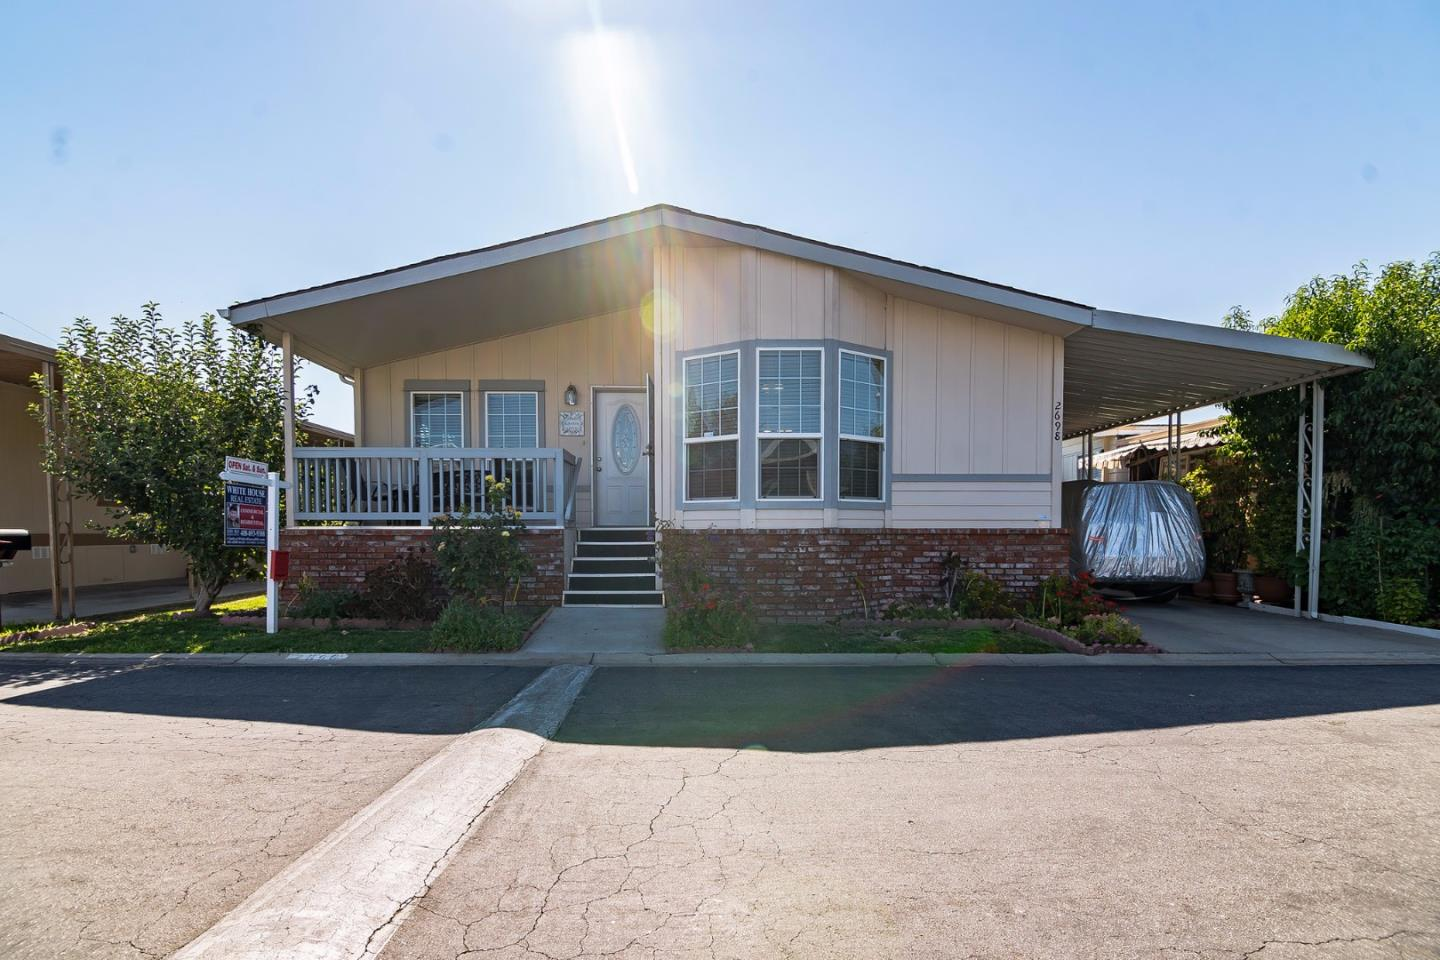 Single Family Home for Sale at 2698 Whispering Hills Road San Jose, California 95148 United States